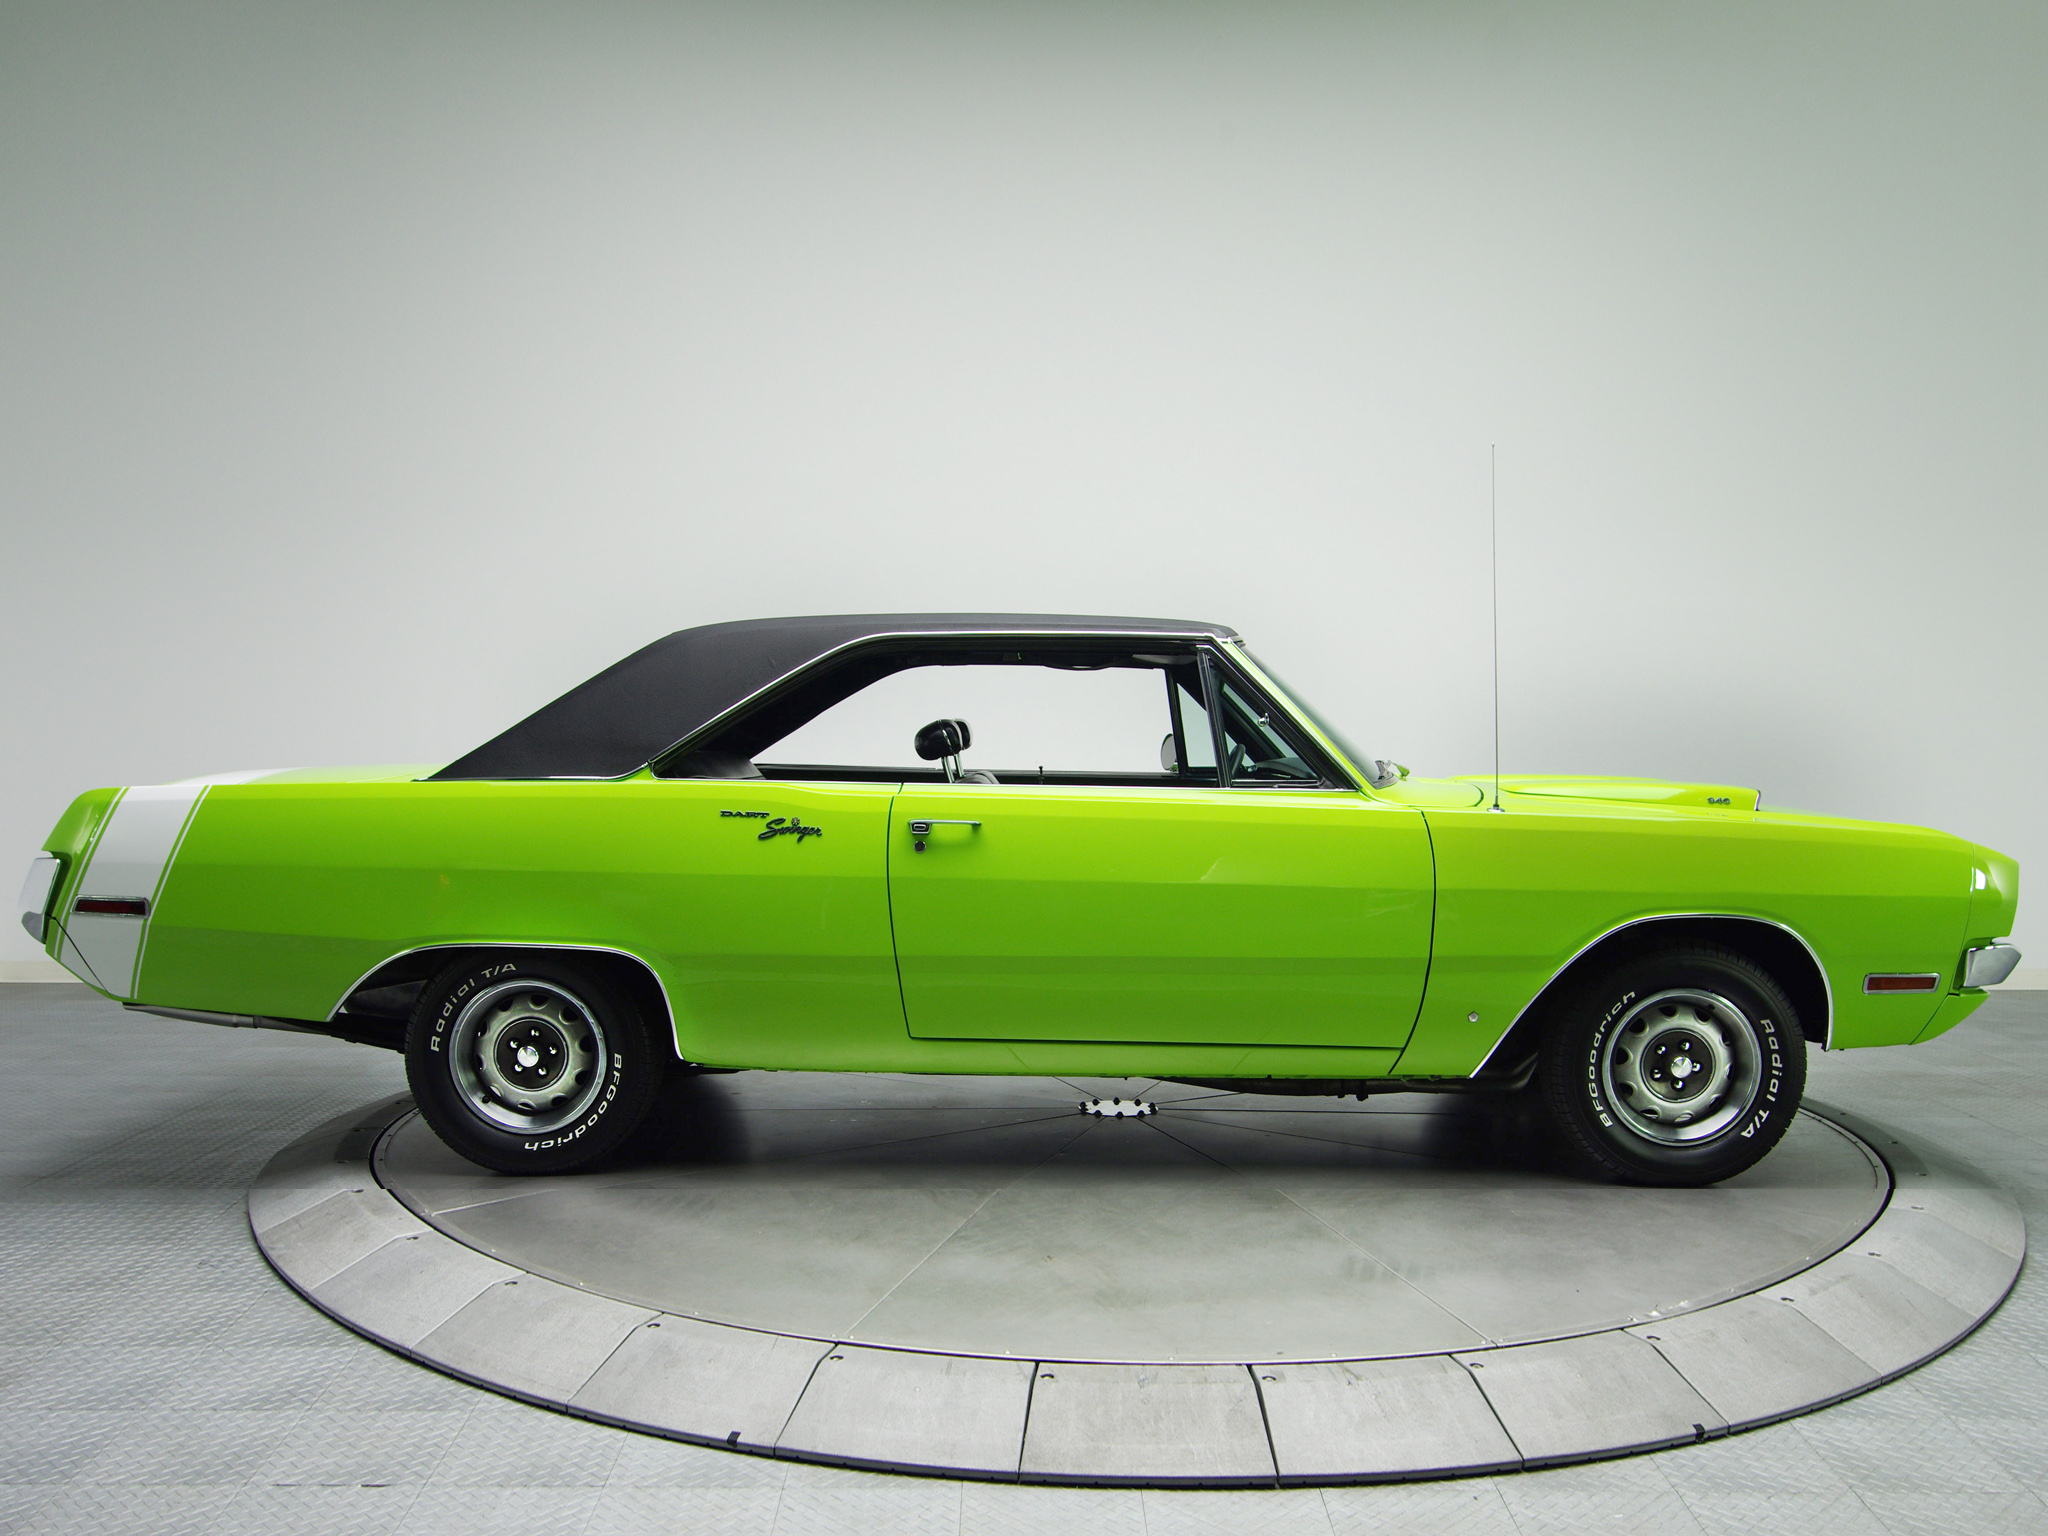 1970 dodge dart swinger 340 muscle classic fd wallpaper 2048x1536. Cars Review. Best American Auto & Cars Review